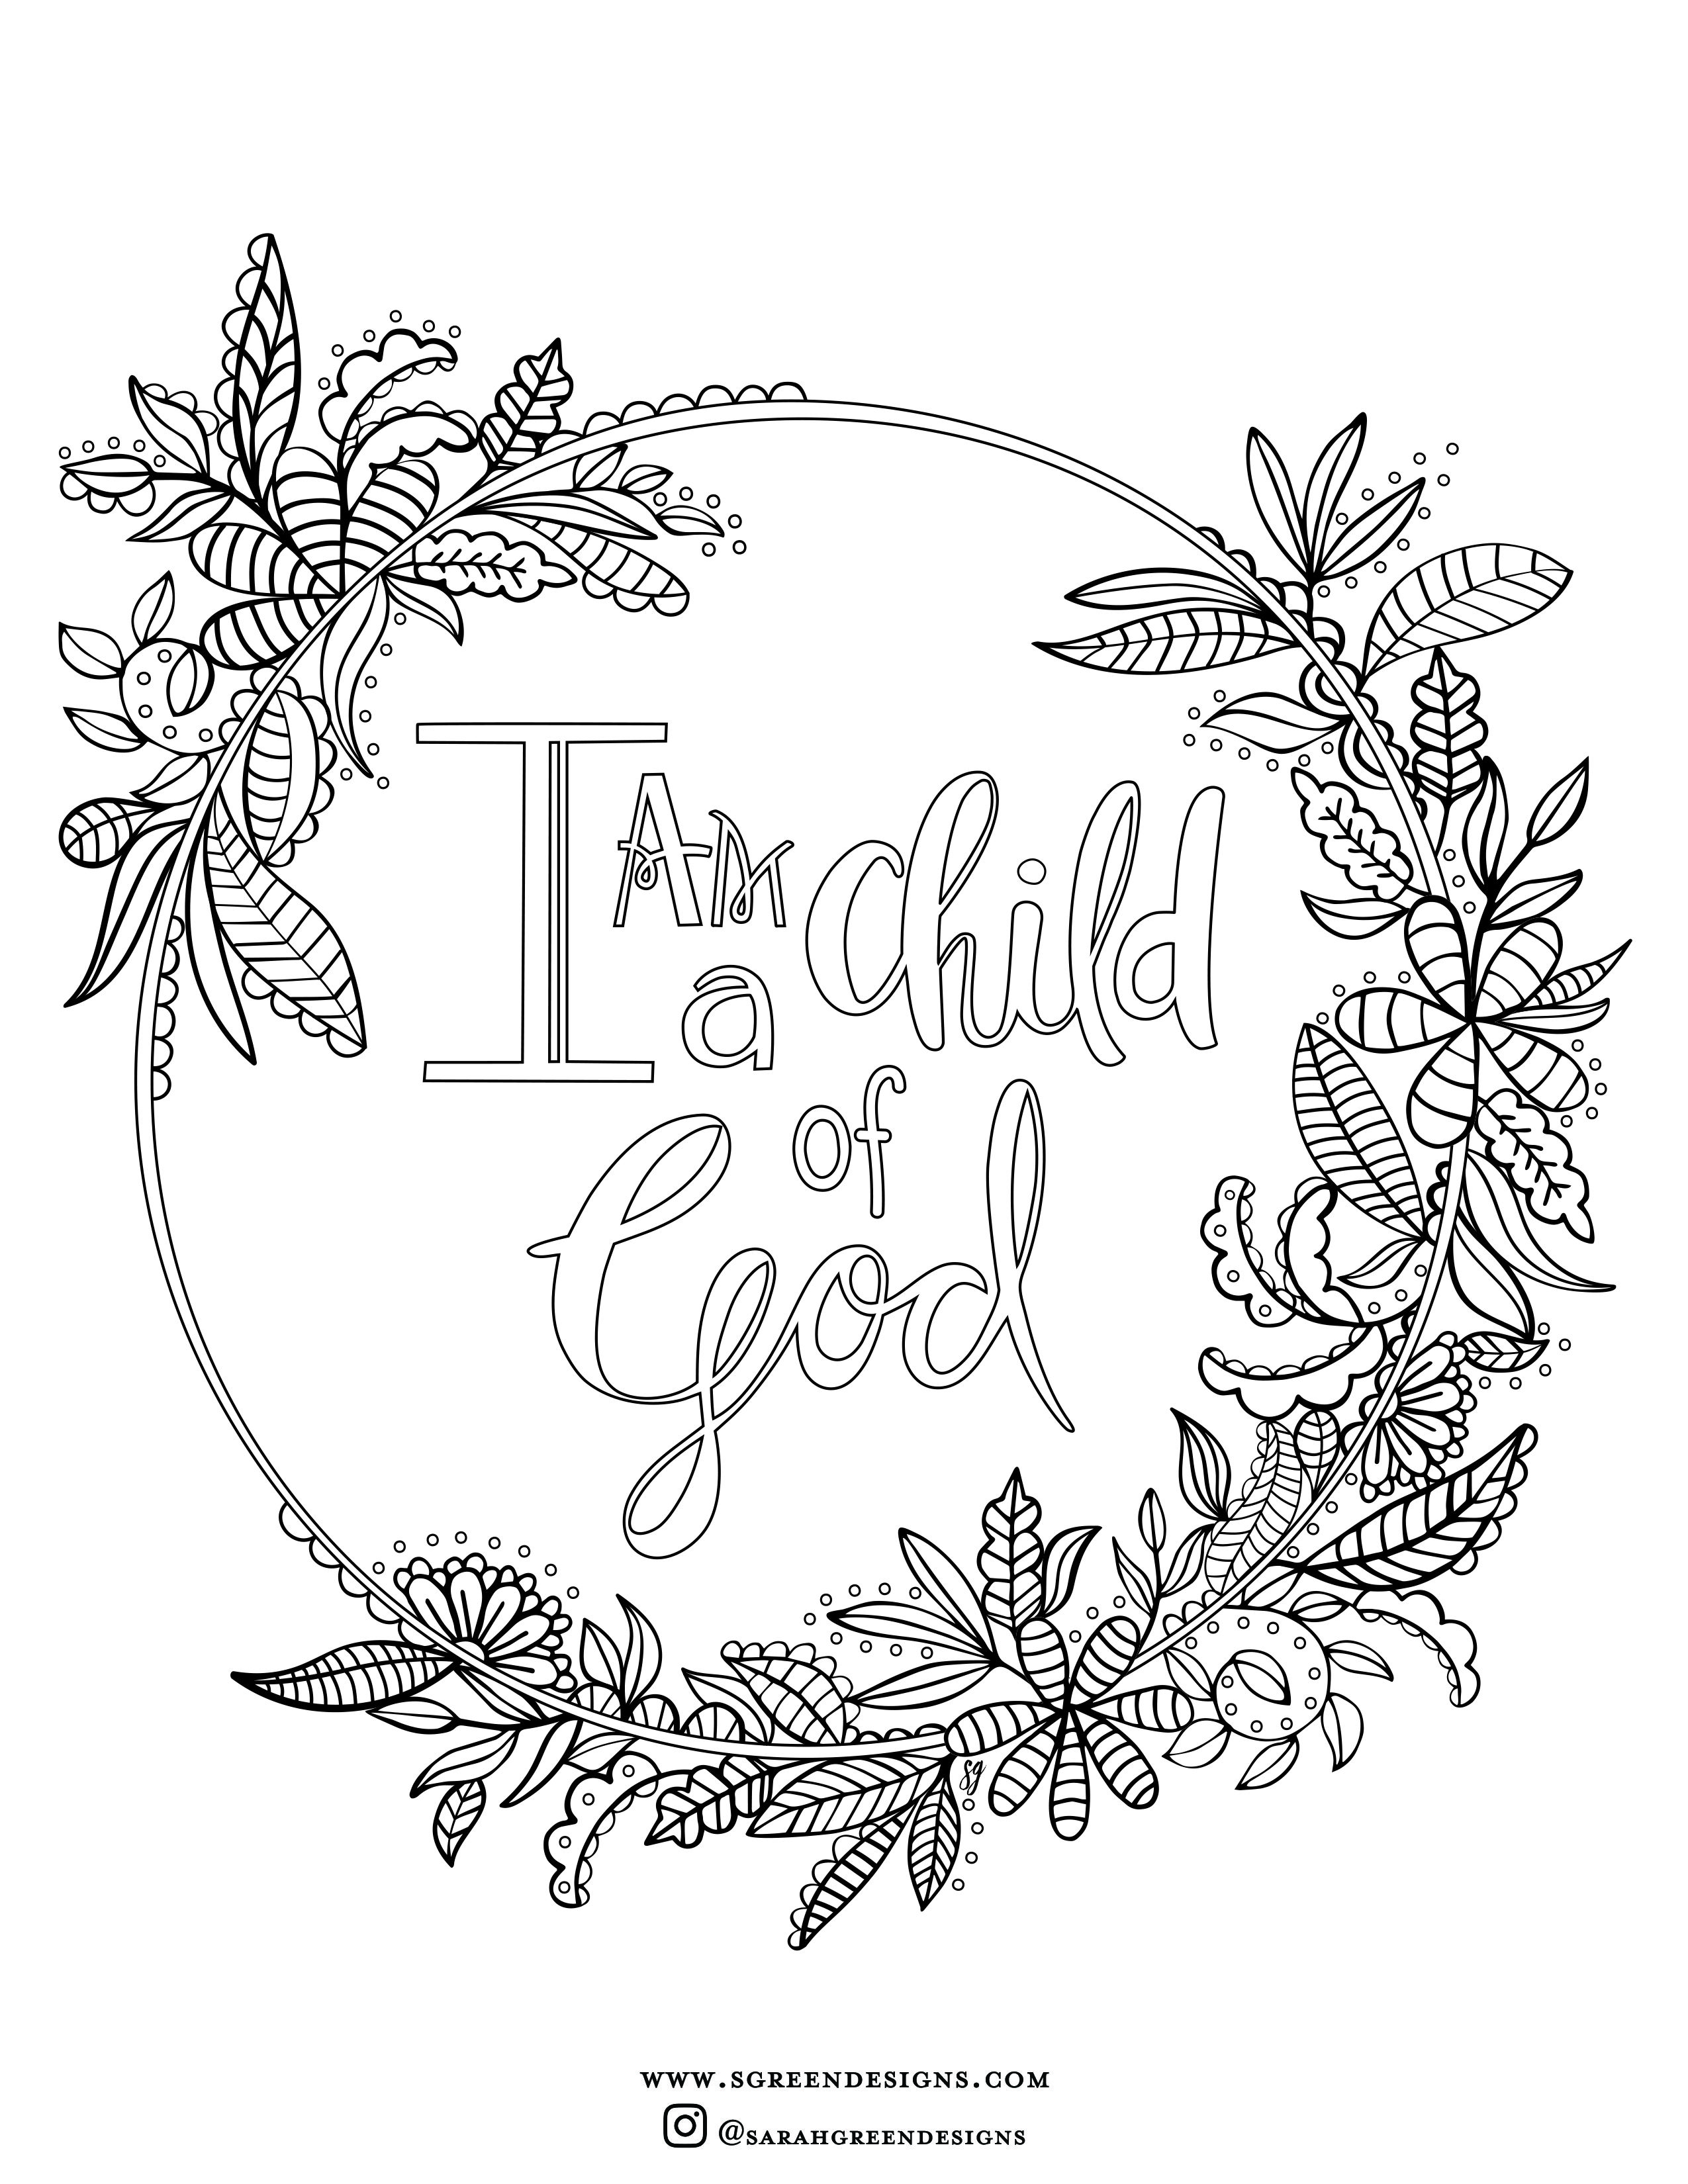 Free coloring page, I am a child of God, Christian coloring page